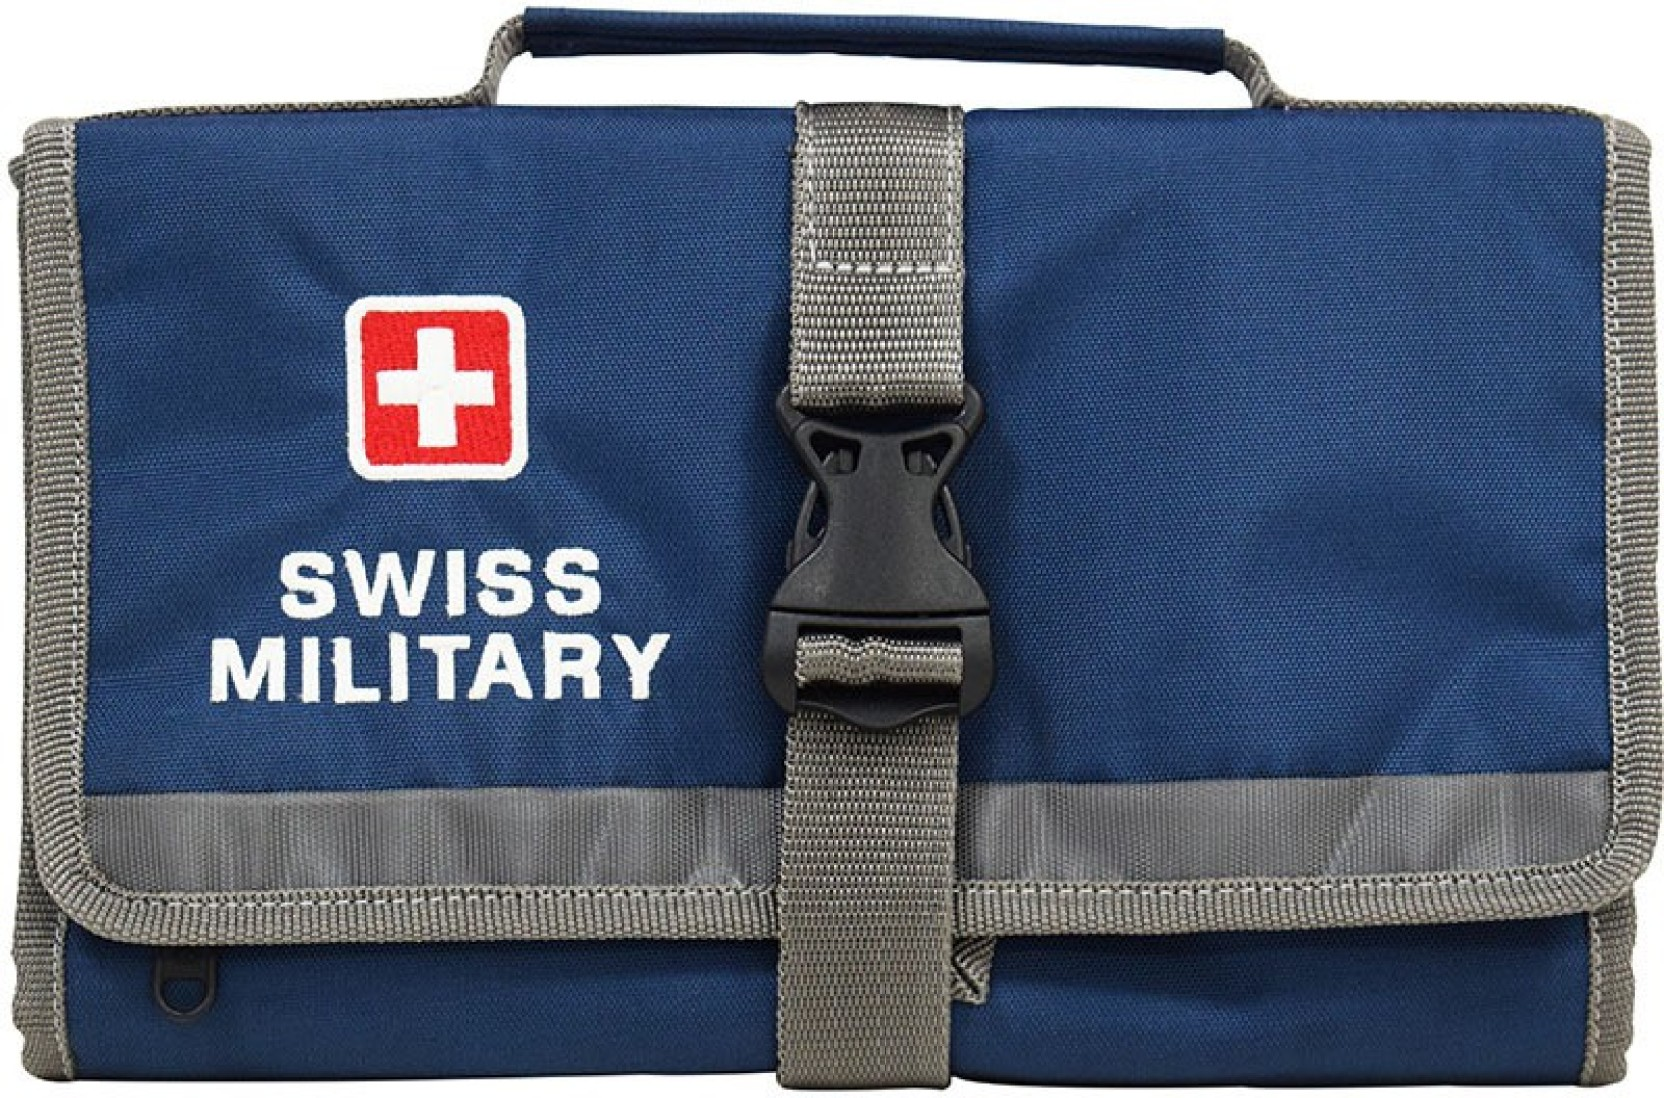 Swiss Military Tw6 Electronic Gadget Organiser Blue Price In India Organizer Home